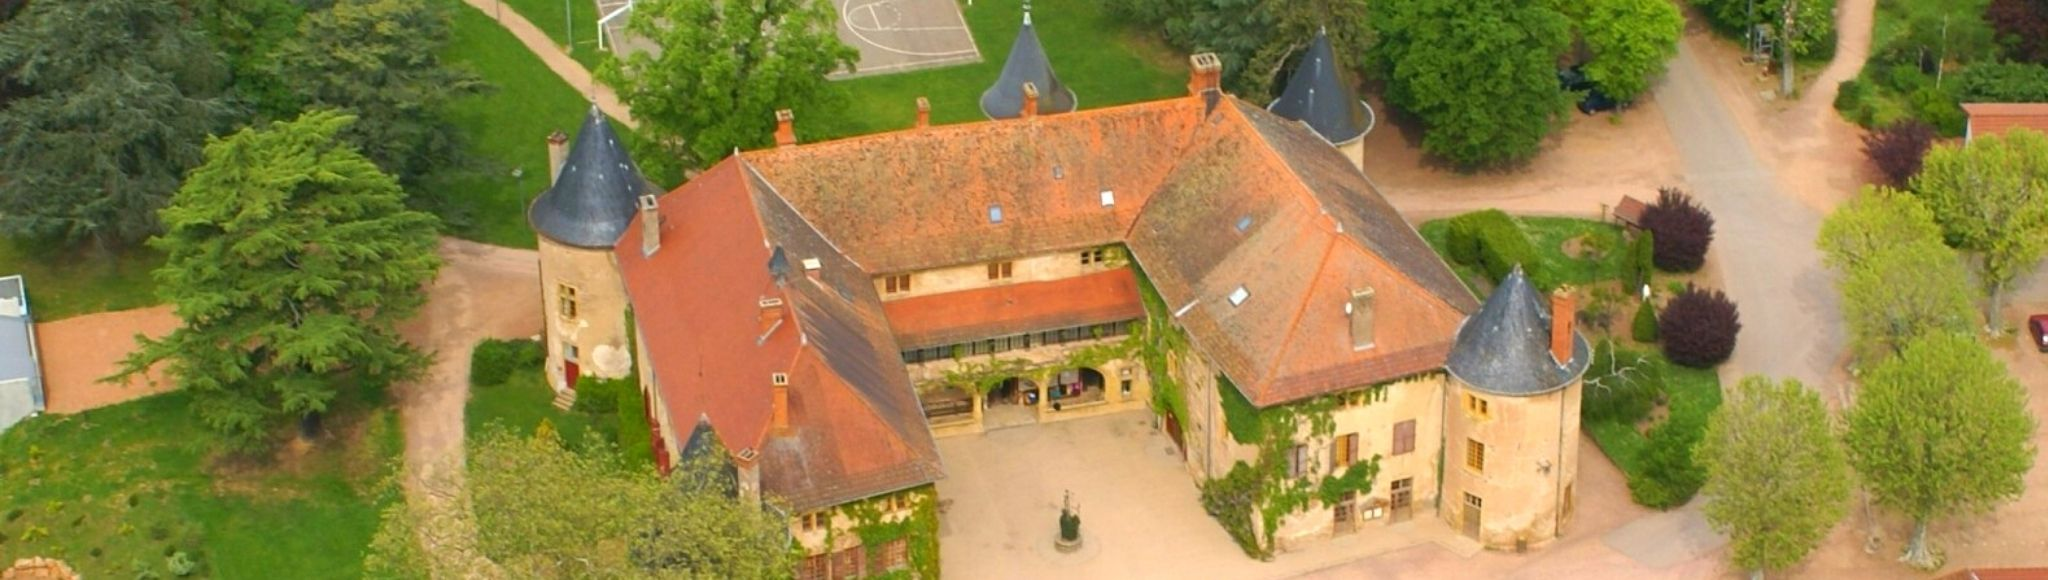 Ressins Residence Aerial view